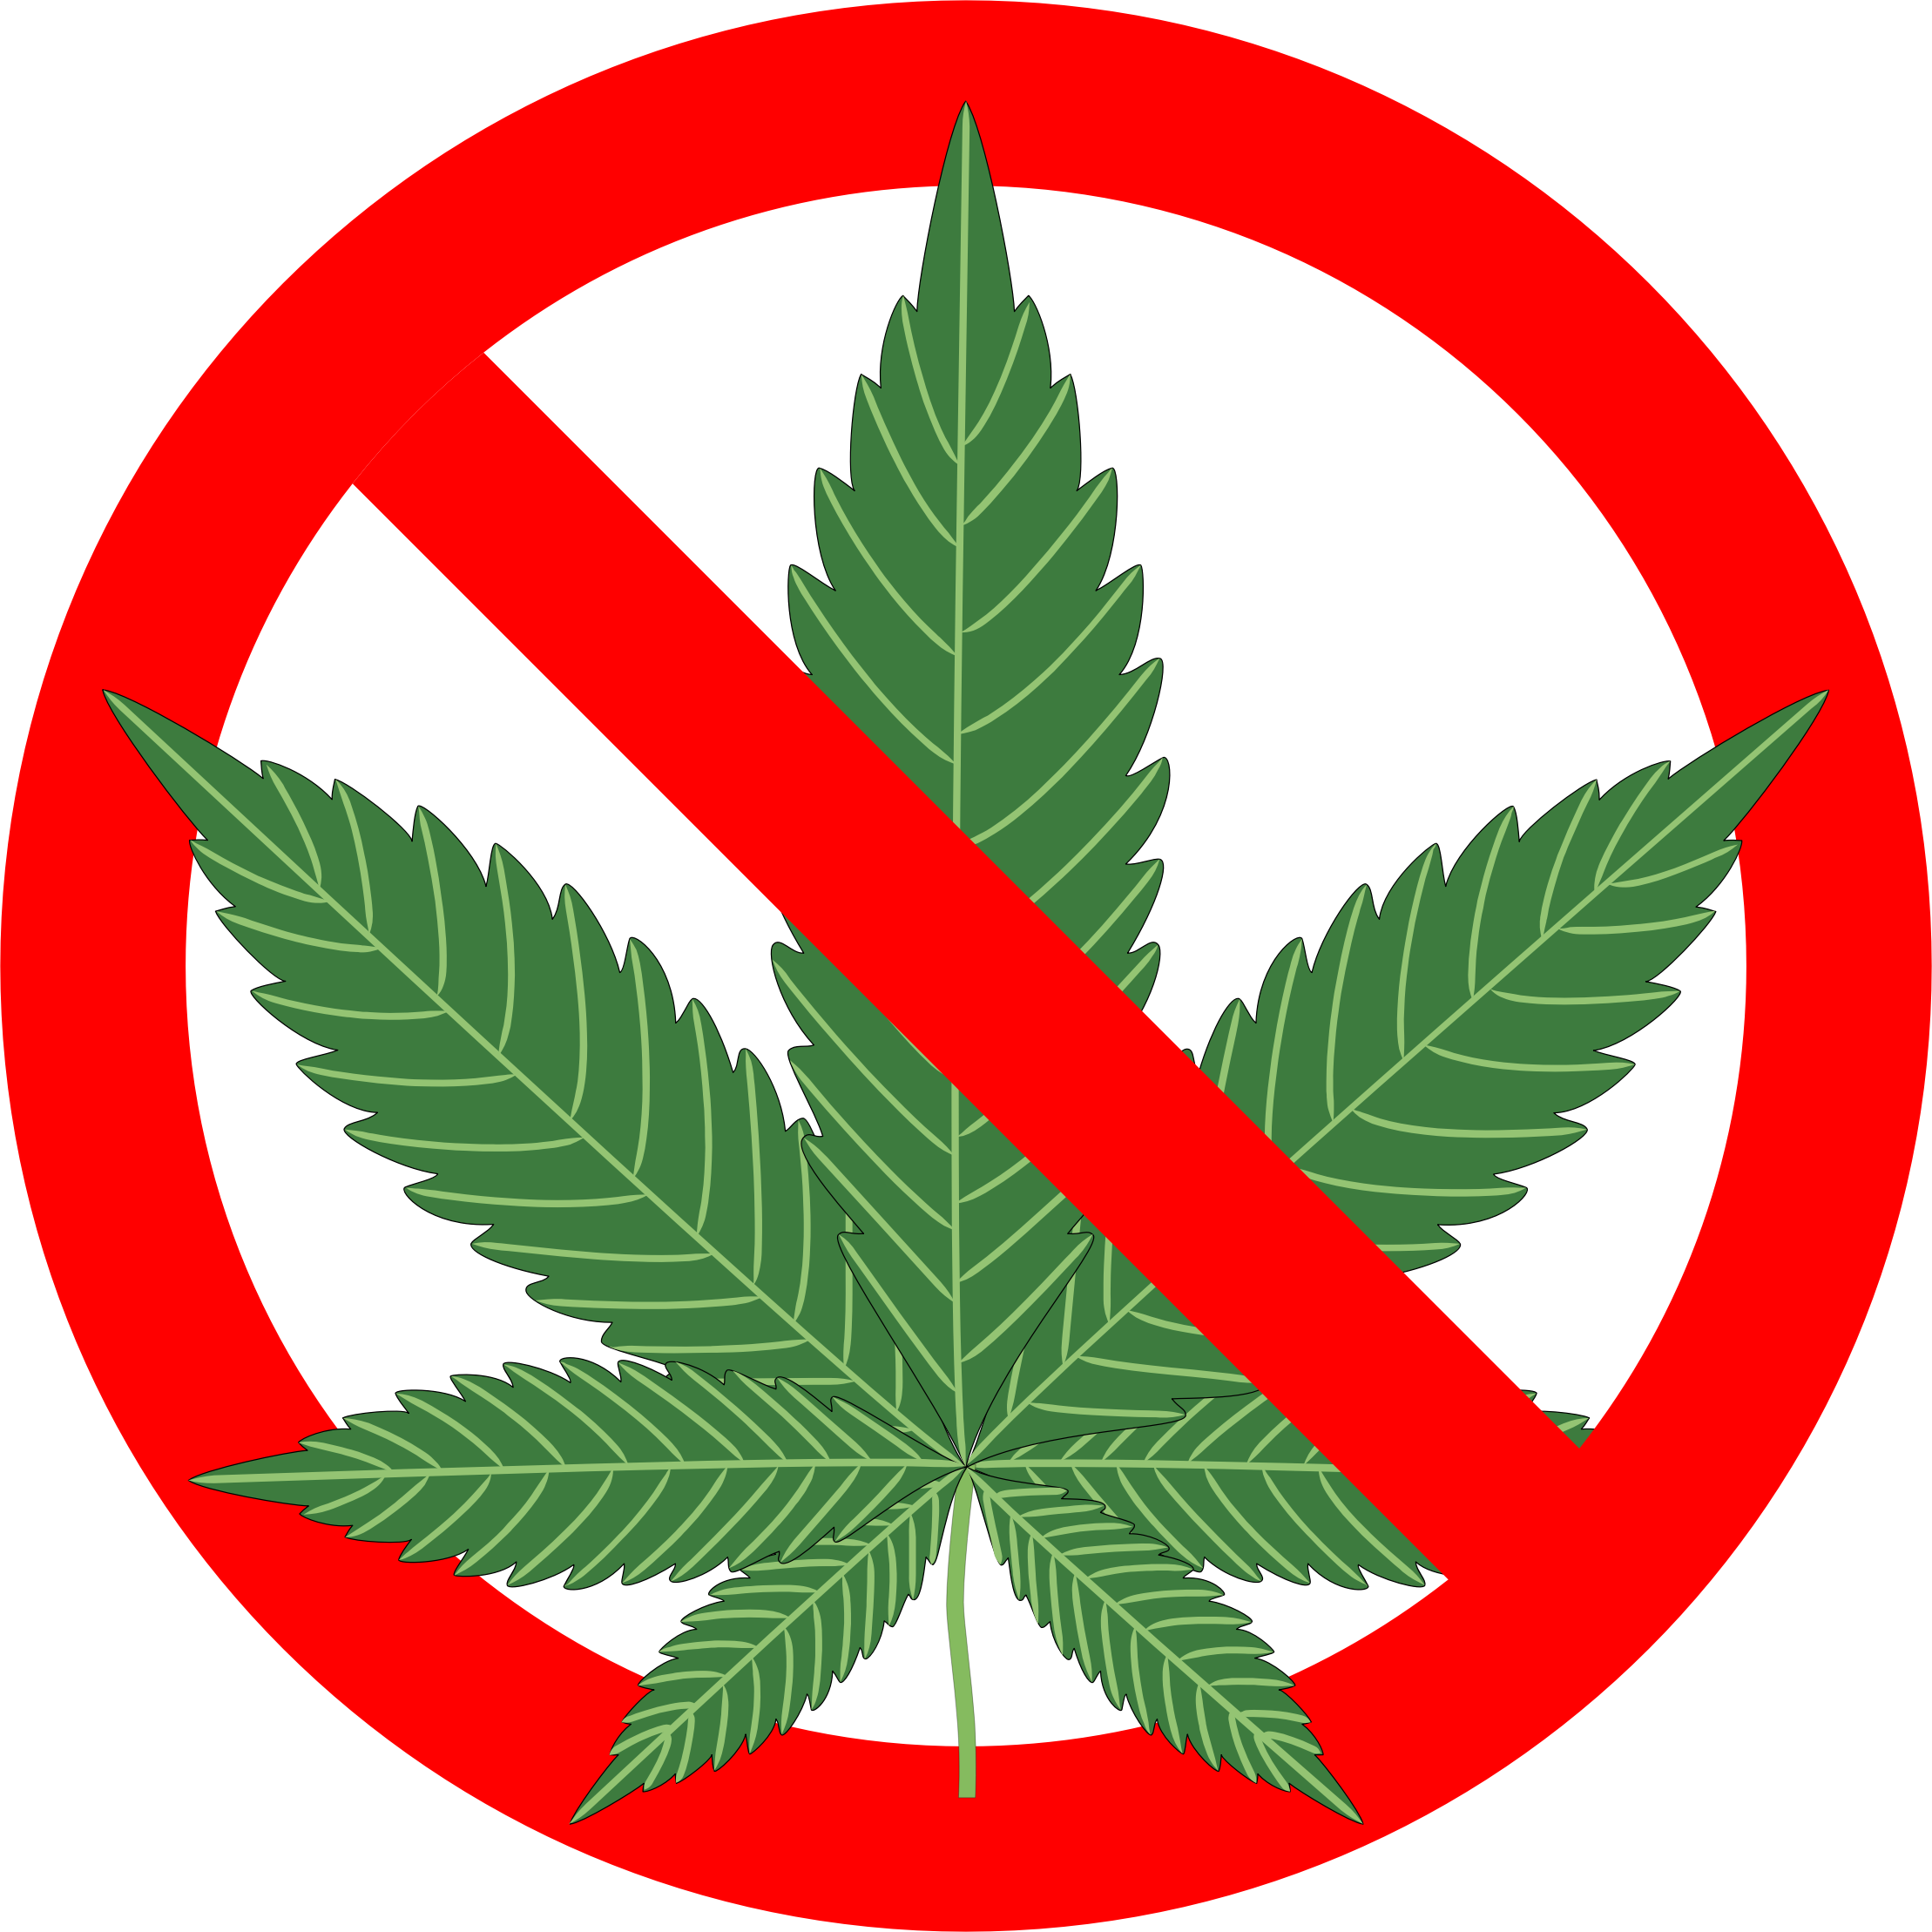 Free Cannabis Cliparts, Download Free Clip Art, Free Clip Art on.